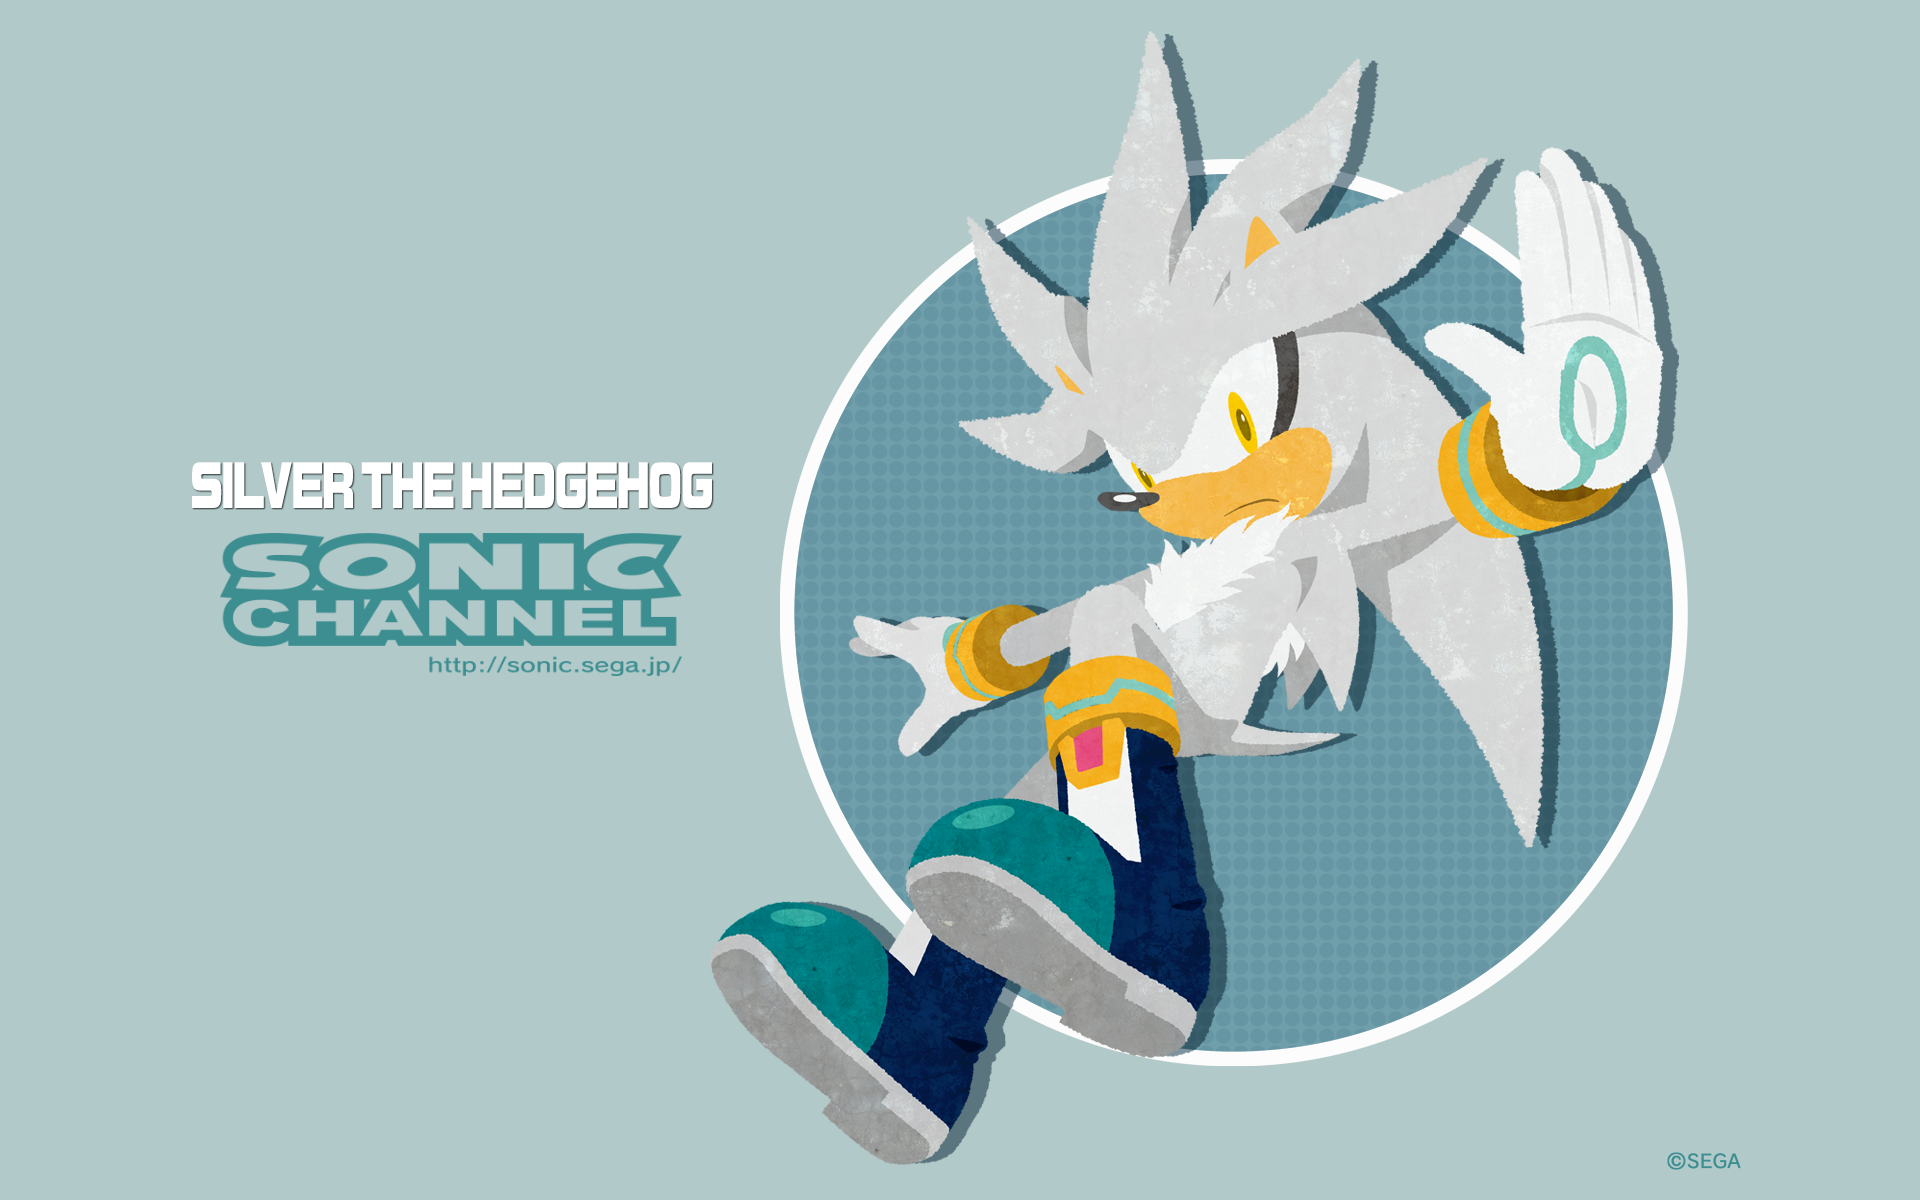 http://sonic.sega.jp/SonicChannel/enjoy/image/wallpaper_156_silver_11_pc.png